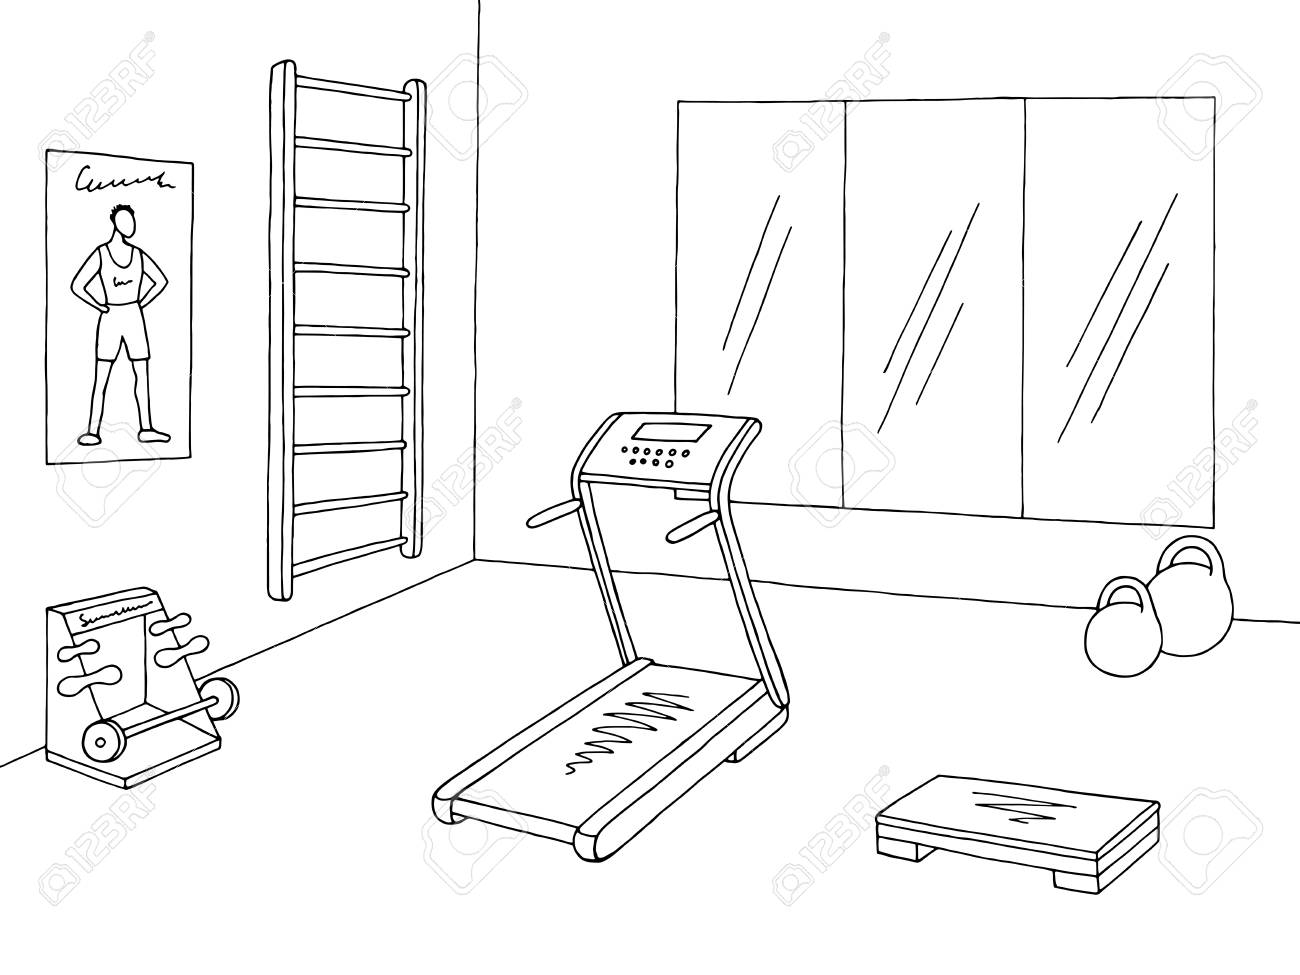 hight resolution of gym clipart black and white 5